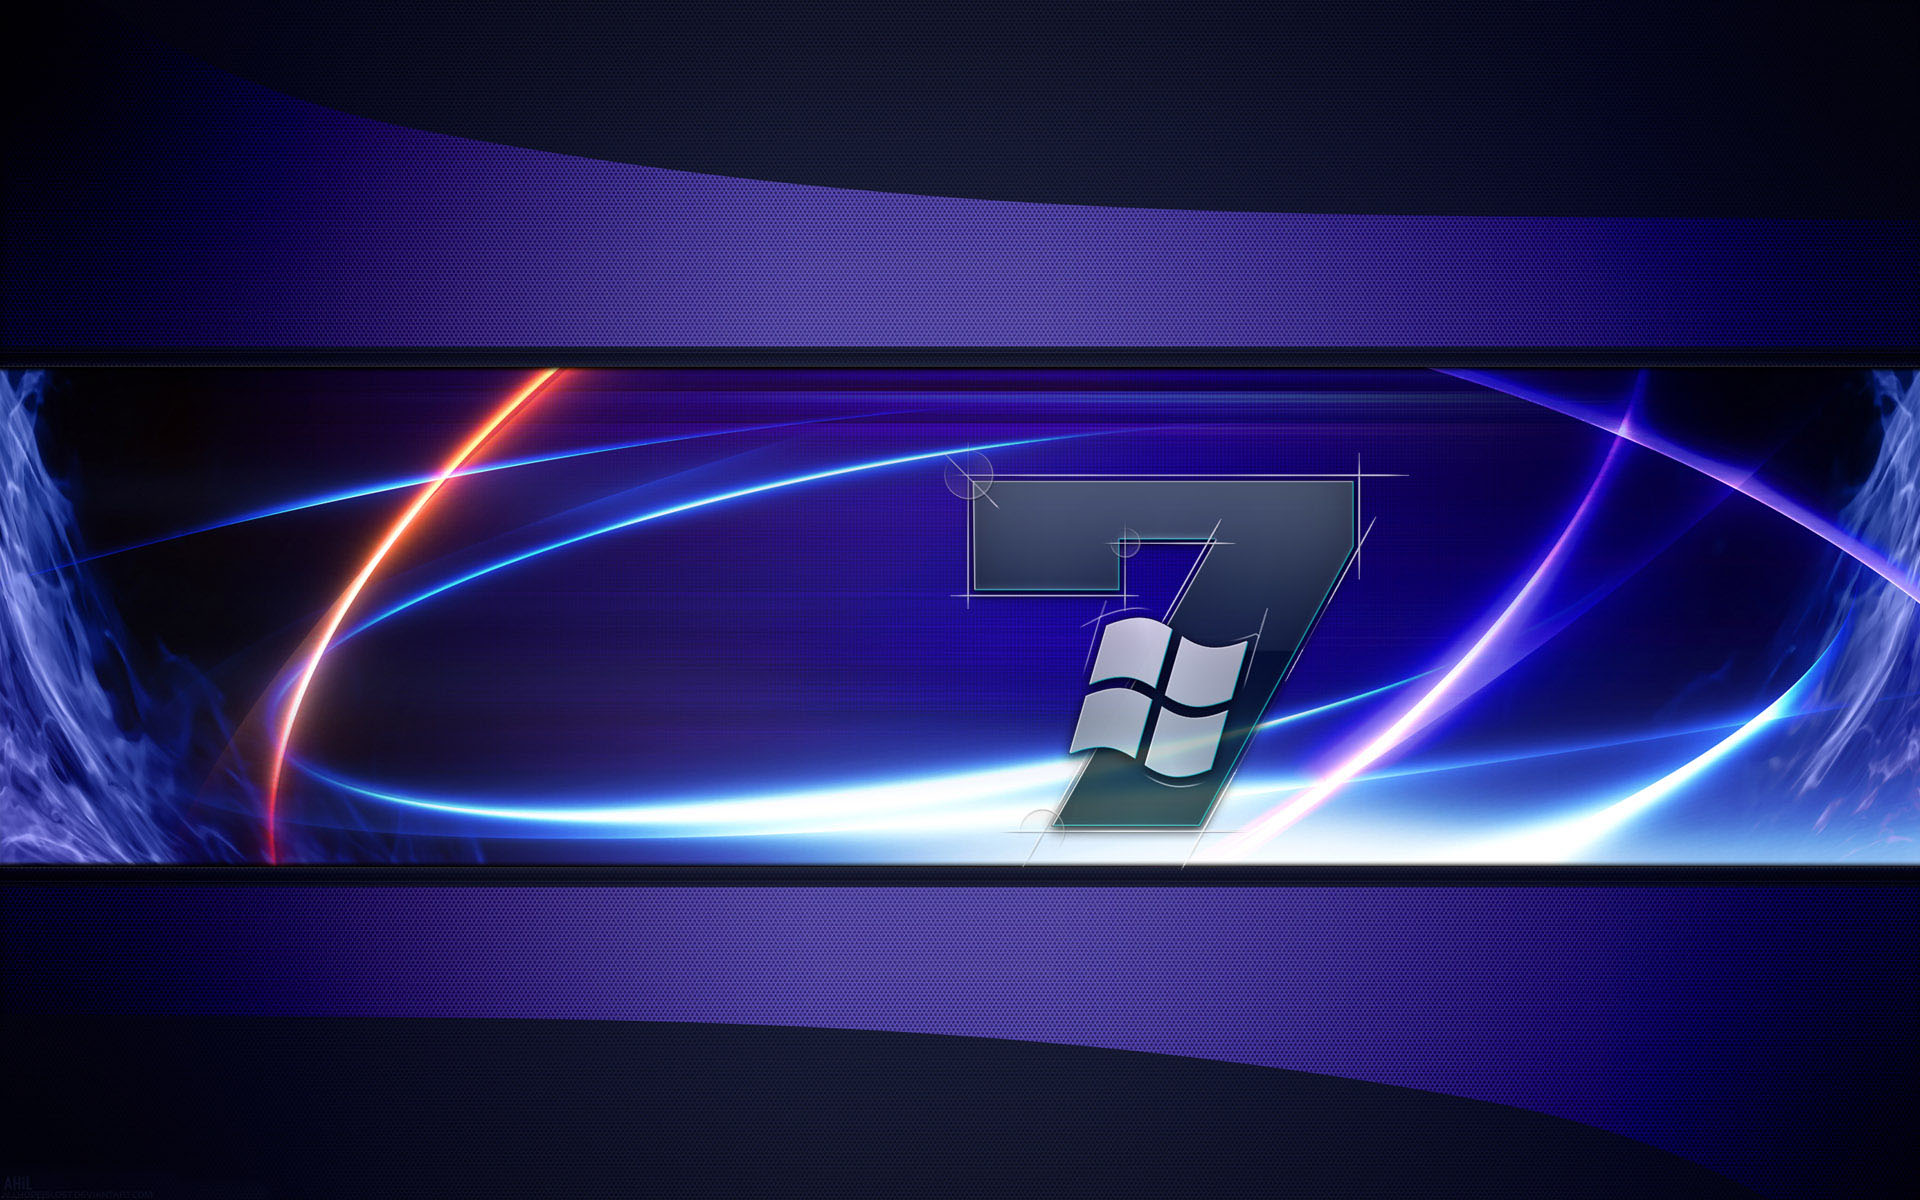 HQ Windows 7 Ultimate 52 Wallpaper   HQ Wallpapers 1920x1200